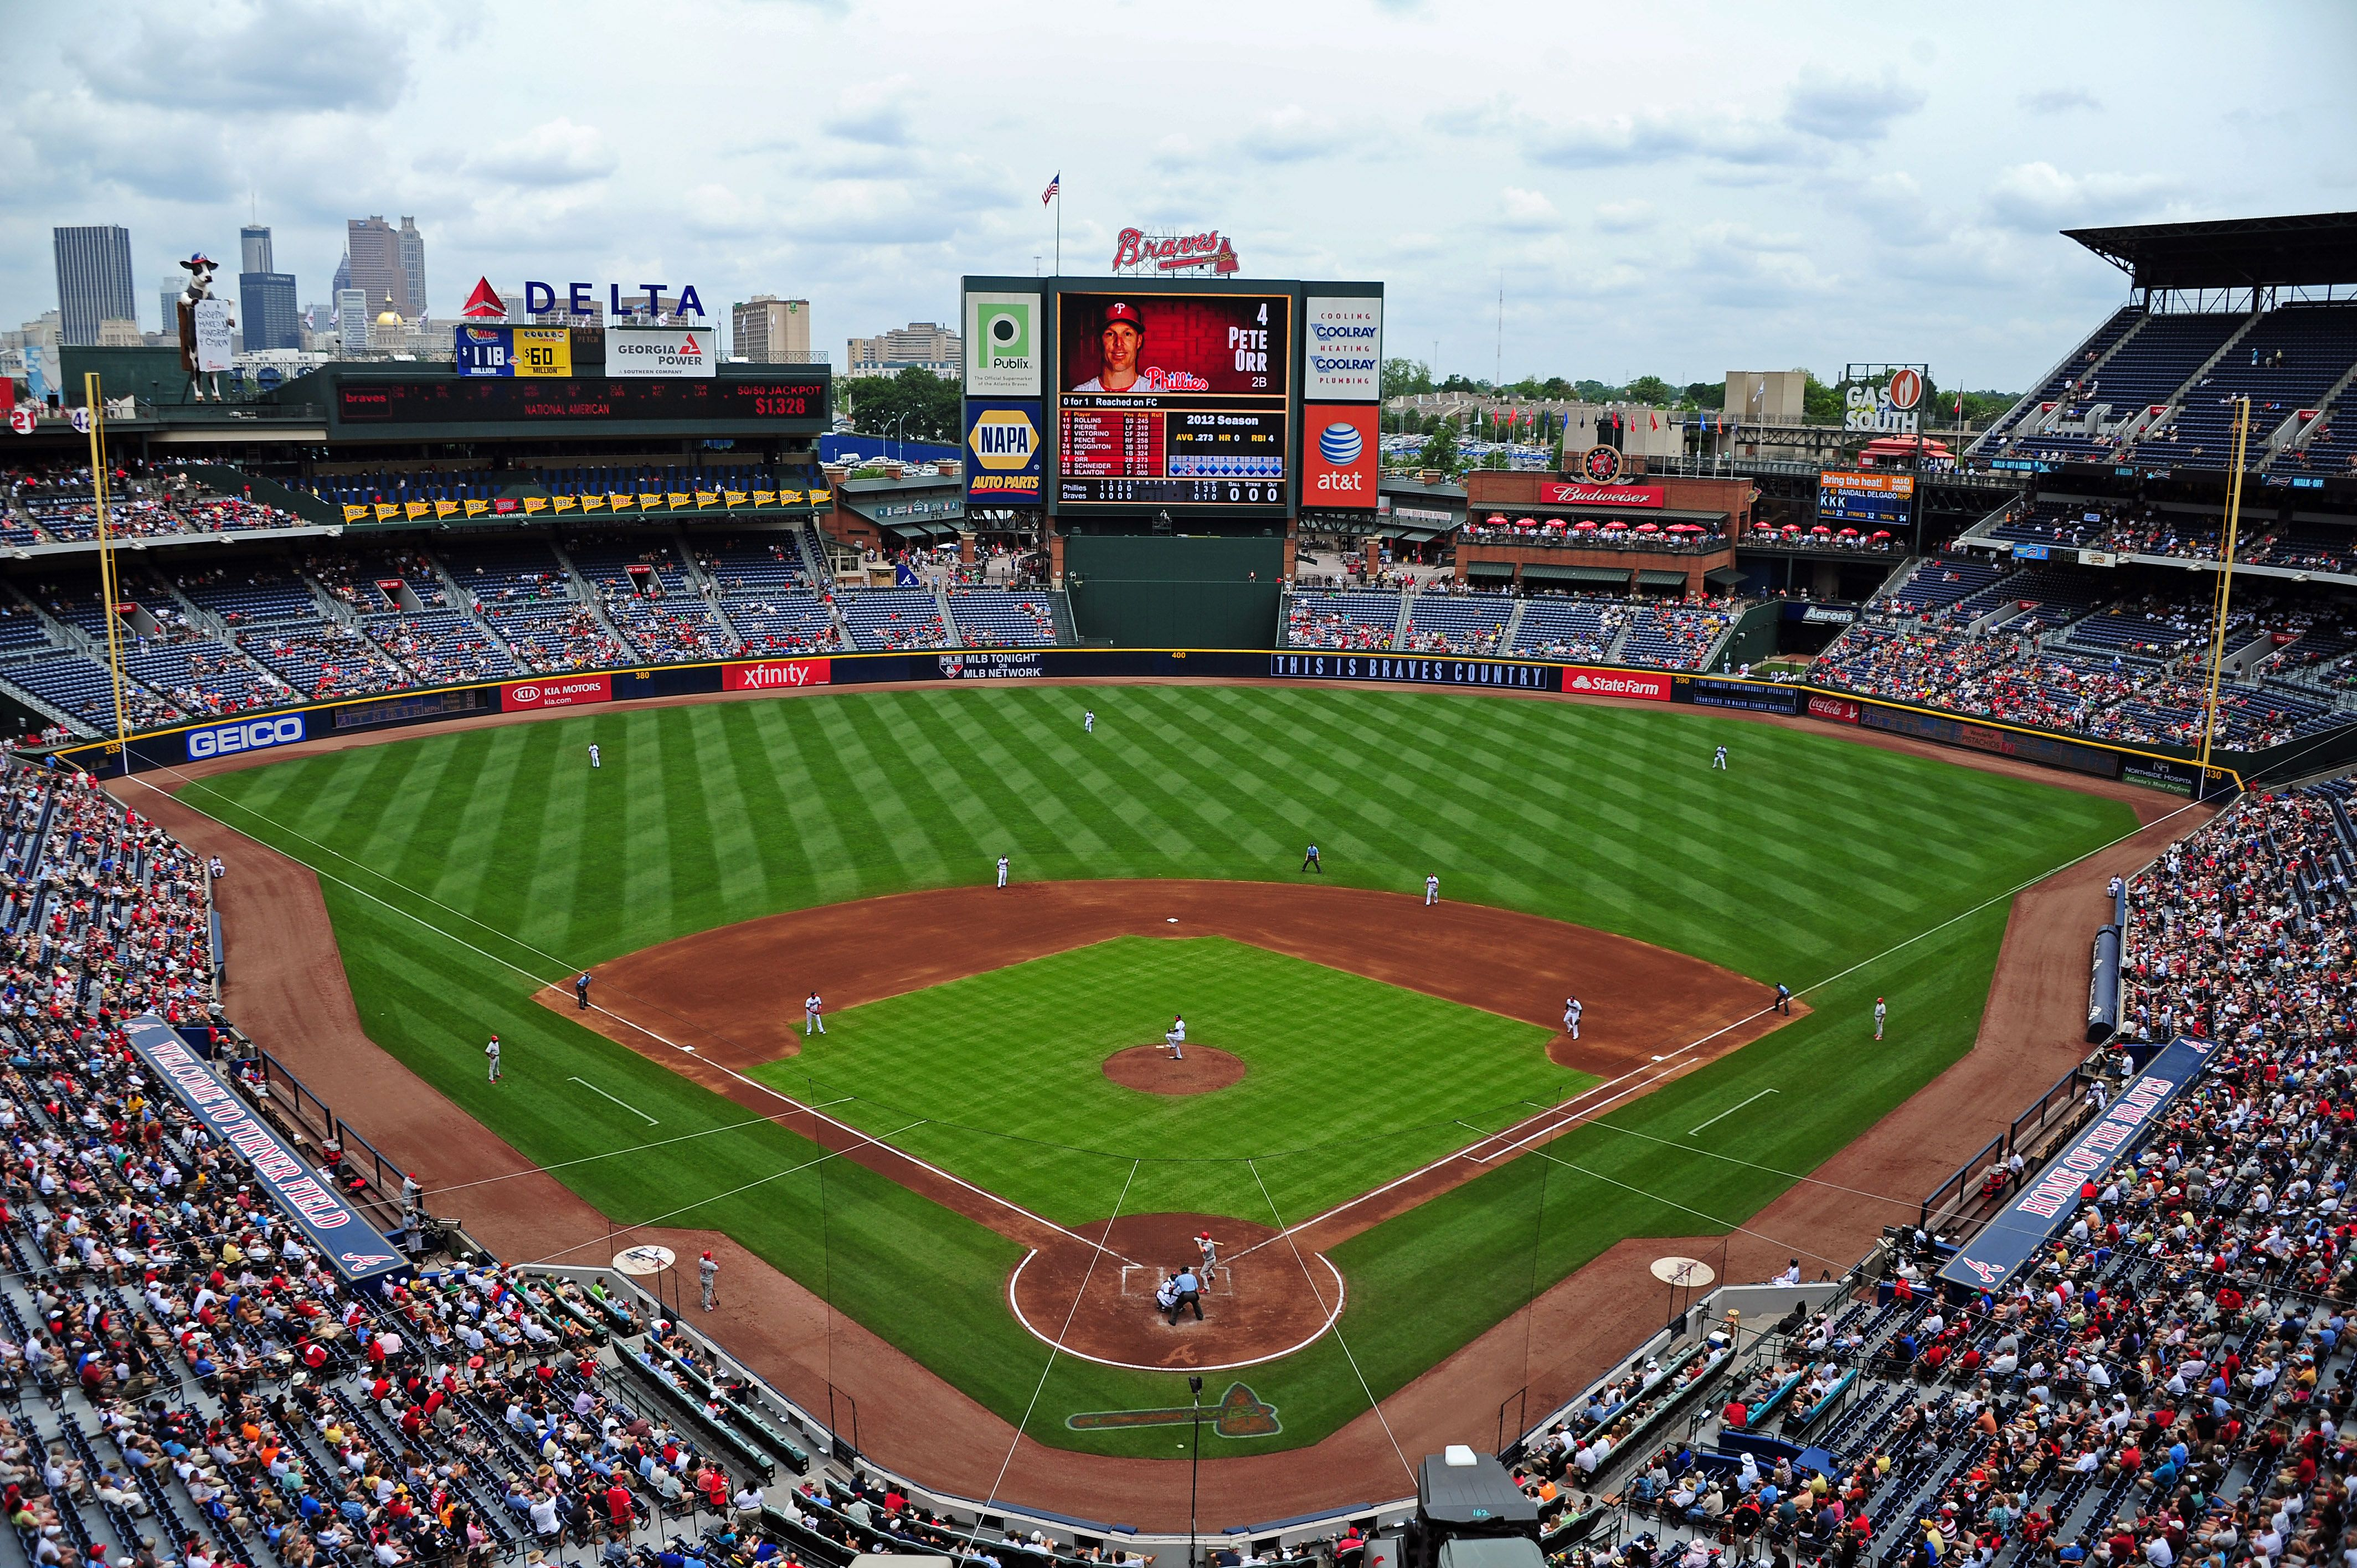 Turner Field Home To The Atlanta Braves Saw My 1st Baseball Game Here During A Road Trip Atlanta Braves Game Braves Baseball Atlanta Braves